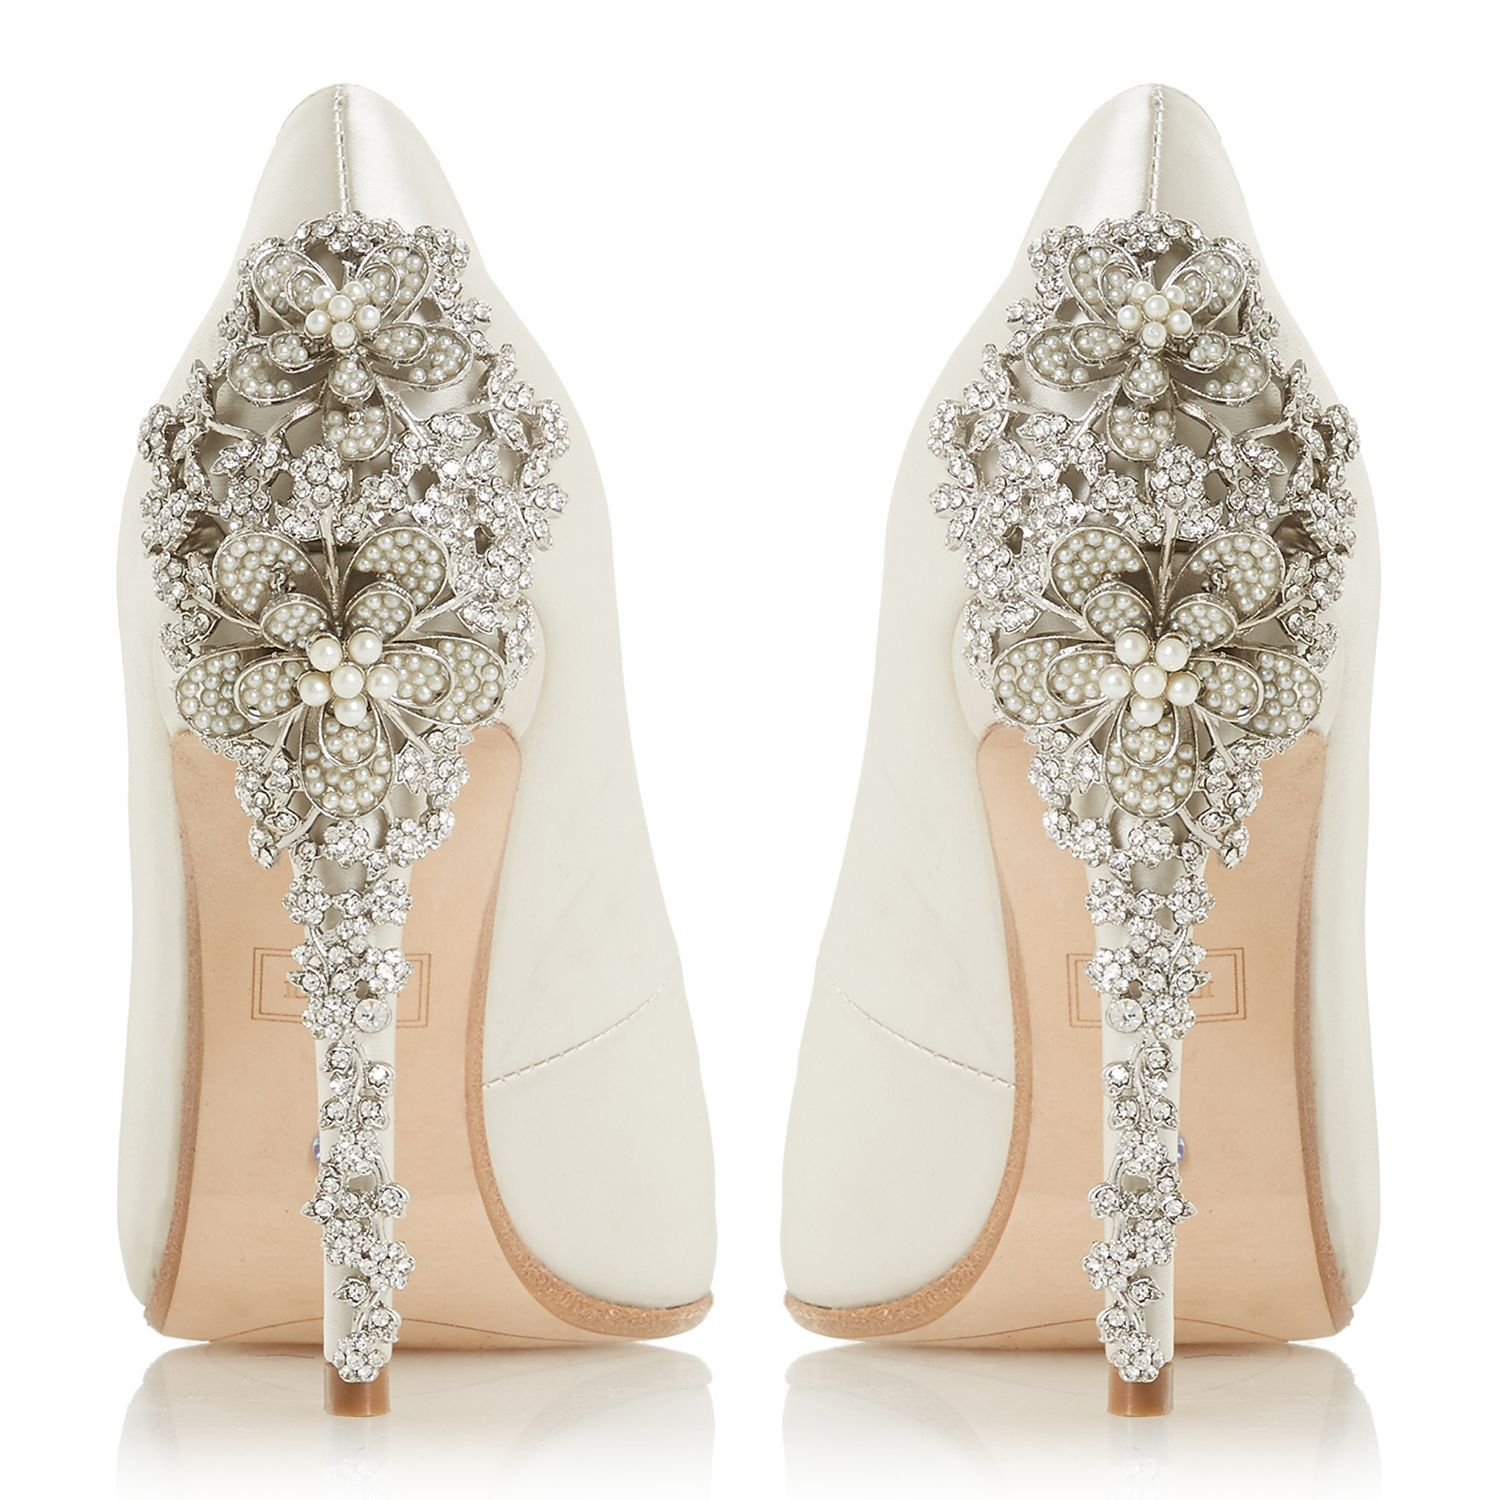 Dune Bridal Collection Be Wedd Embellished Stiletto Court Shoes